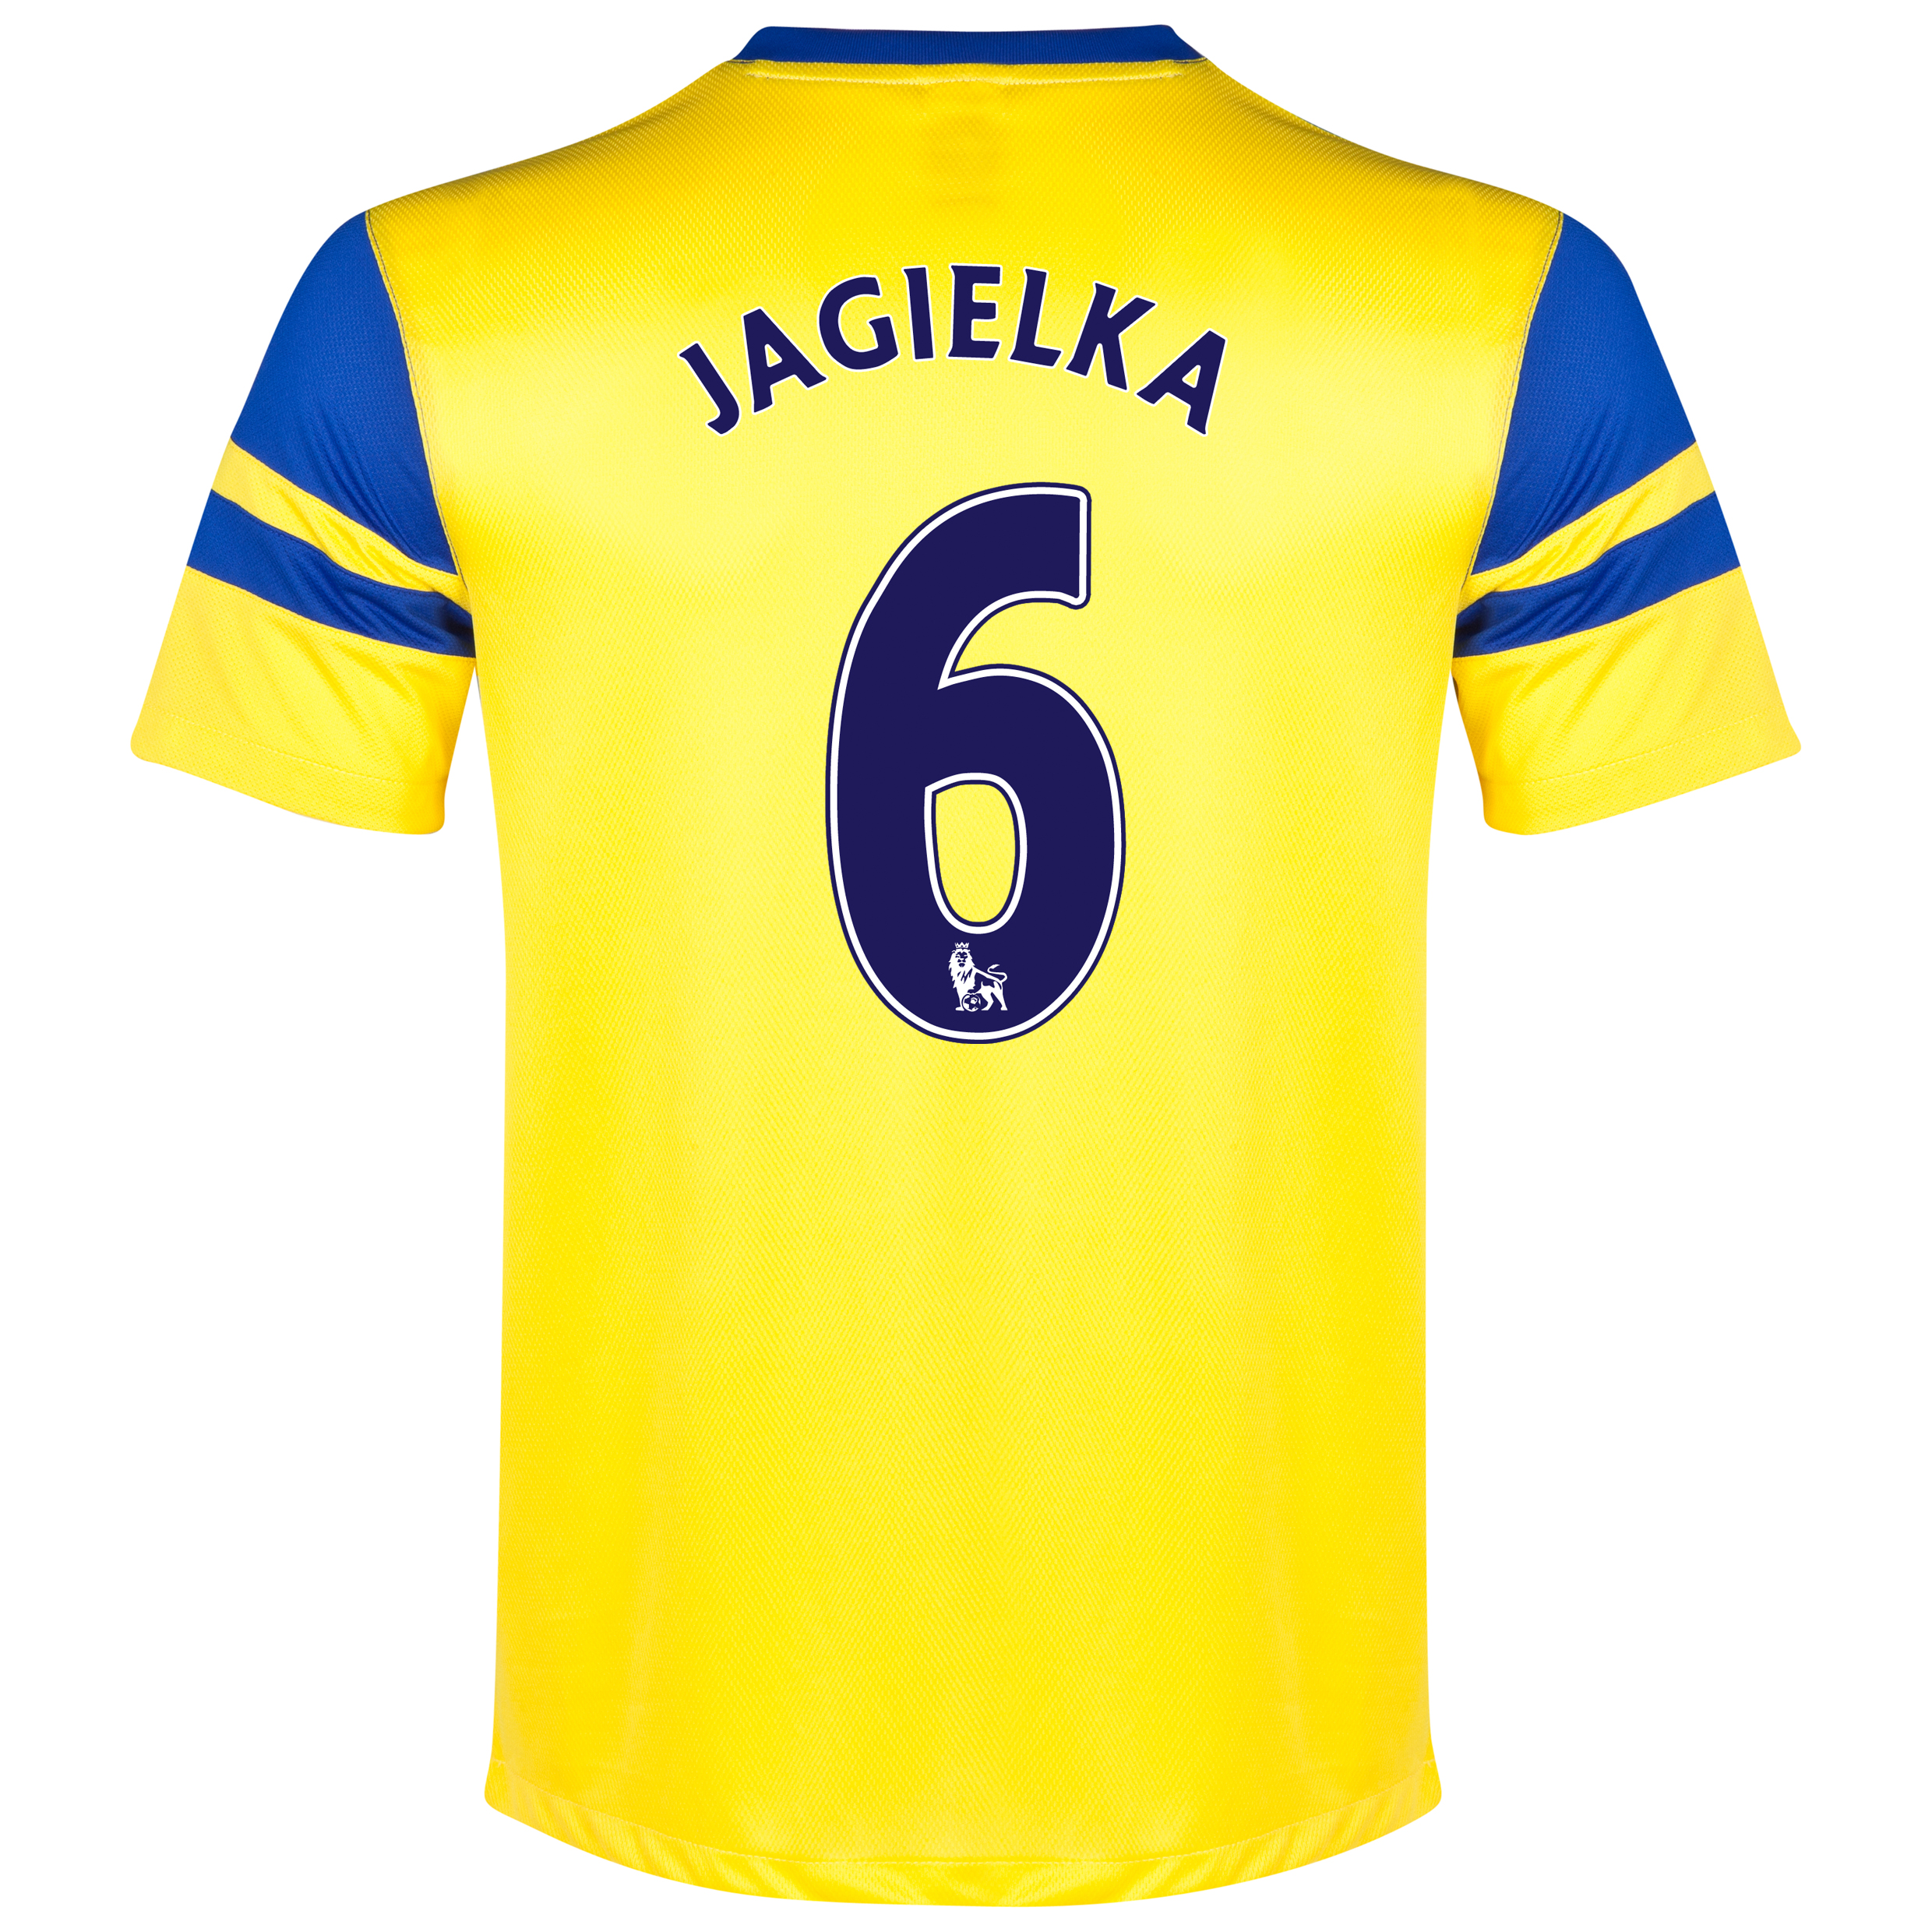 Everton Away Shirt 2013/14 Yellow with Jagielka 6 printing